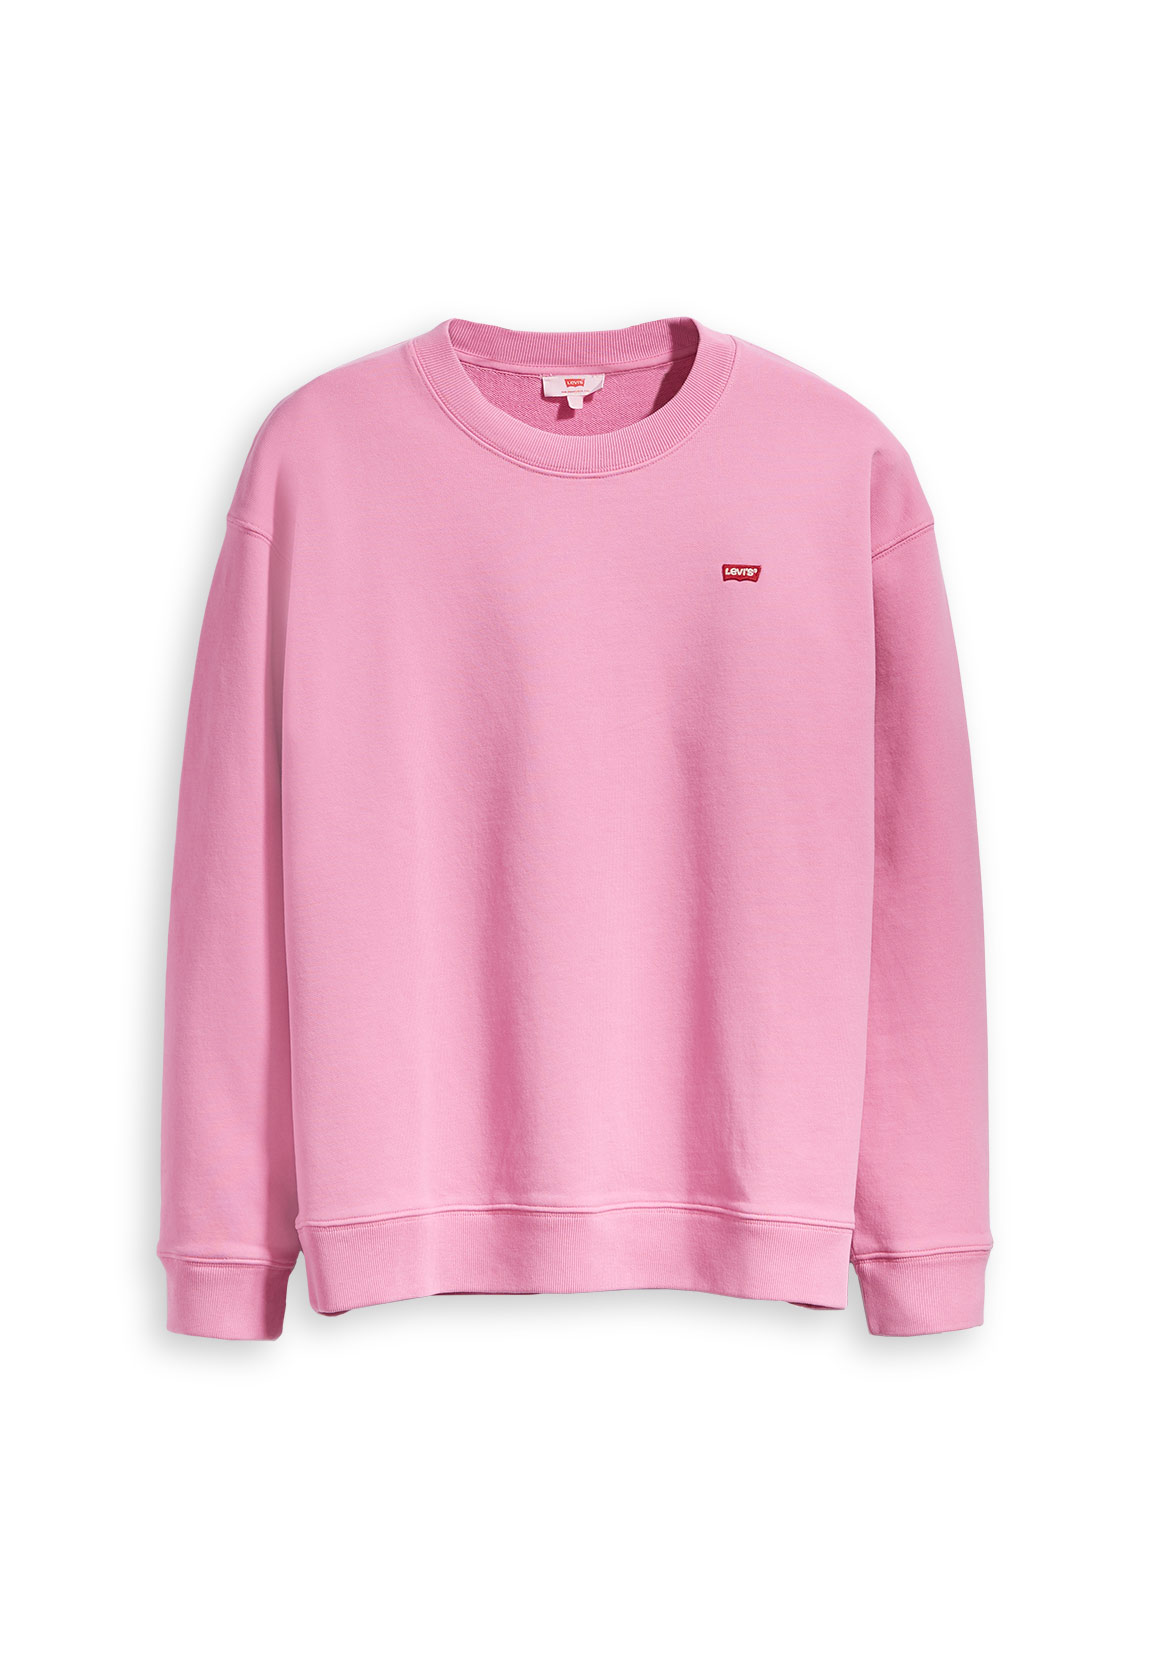 Levi's Sweater Damen OVERSIZED CREWNECK 56333-0001 Pink